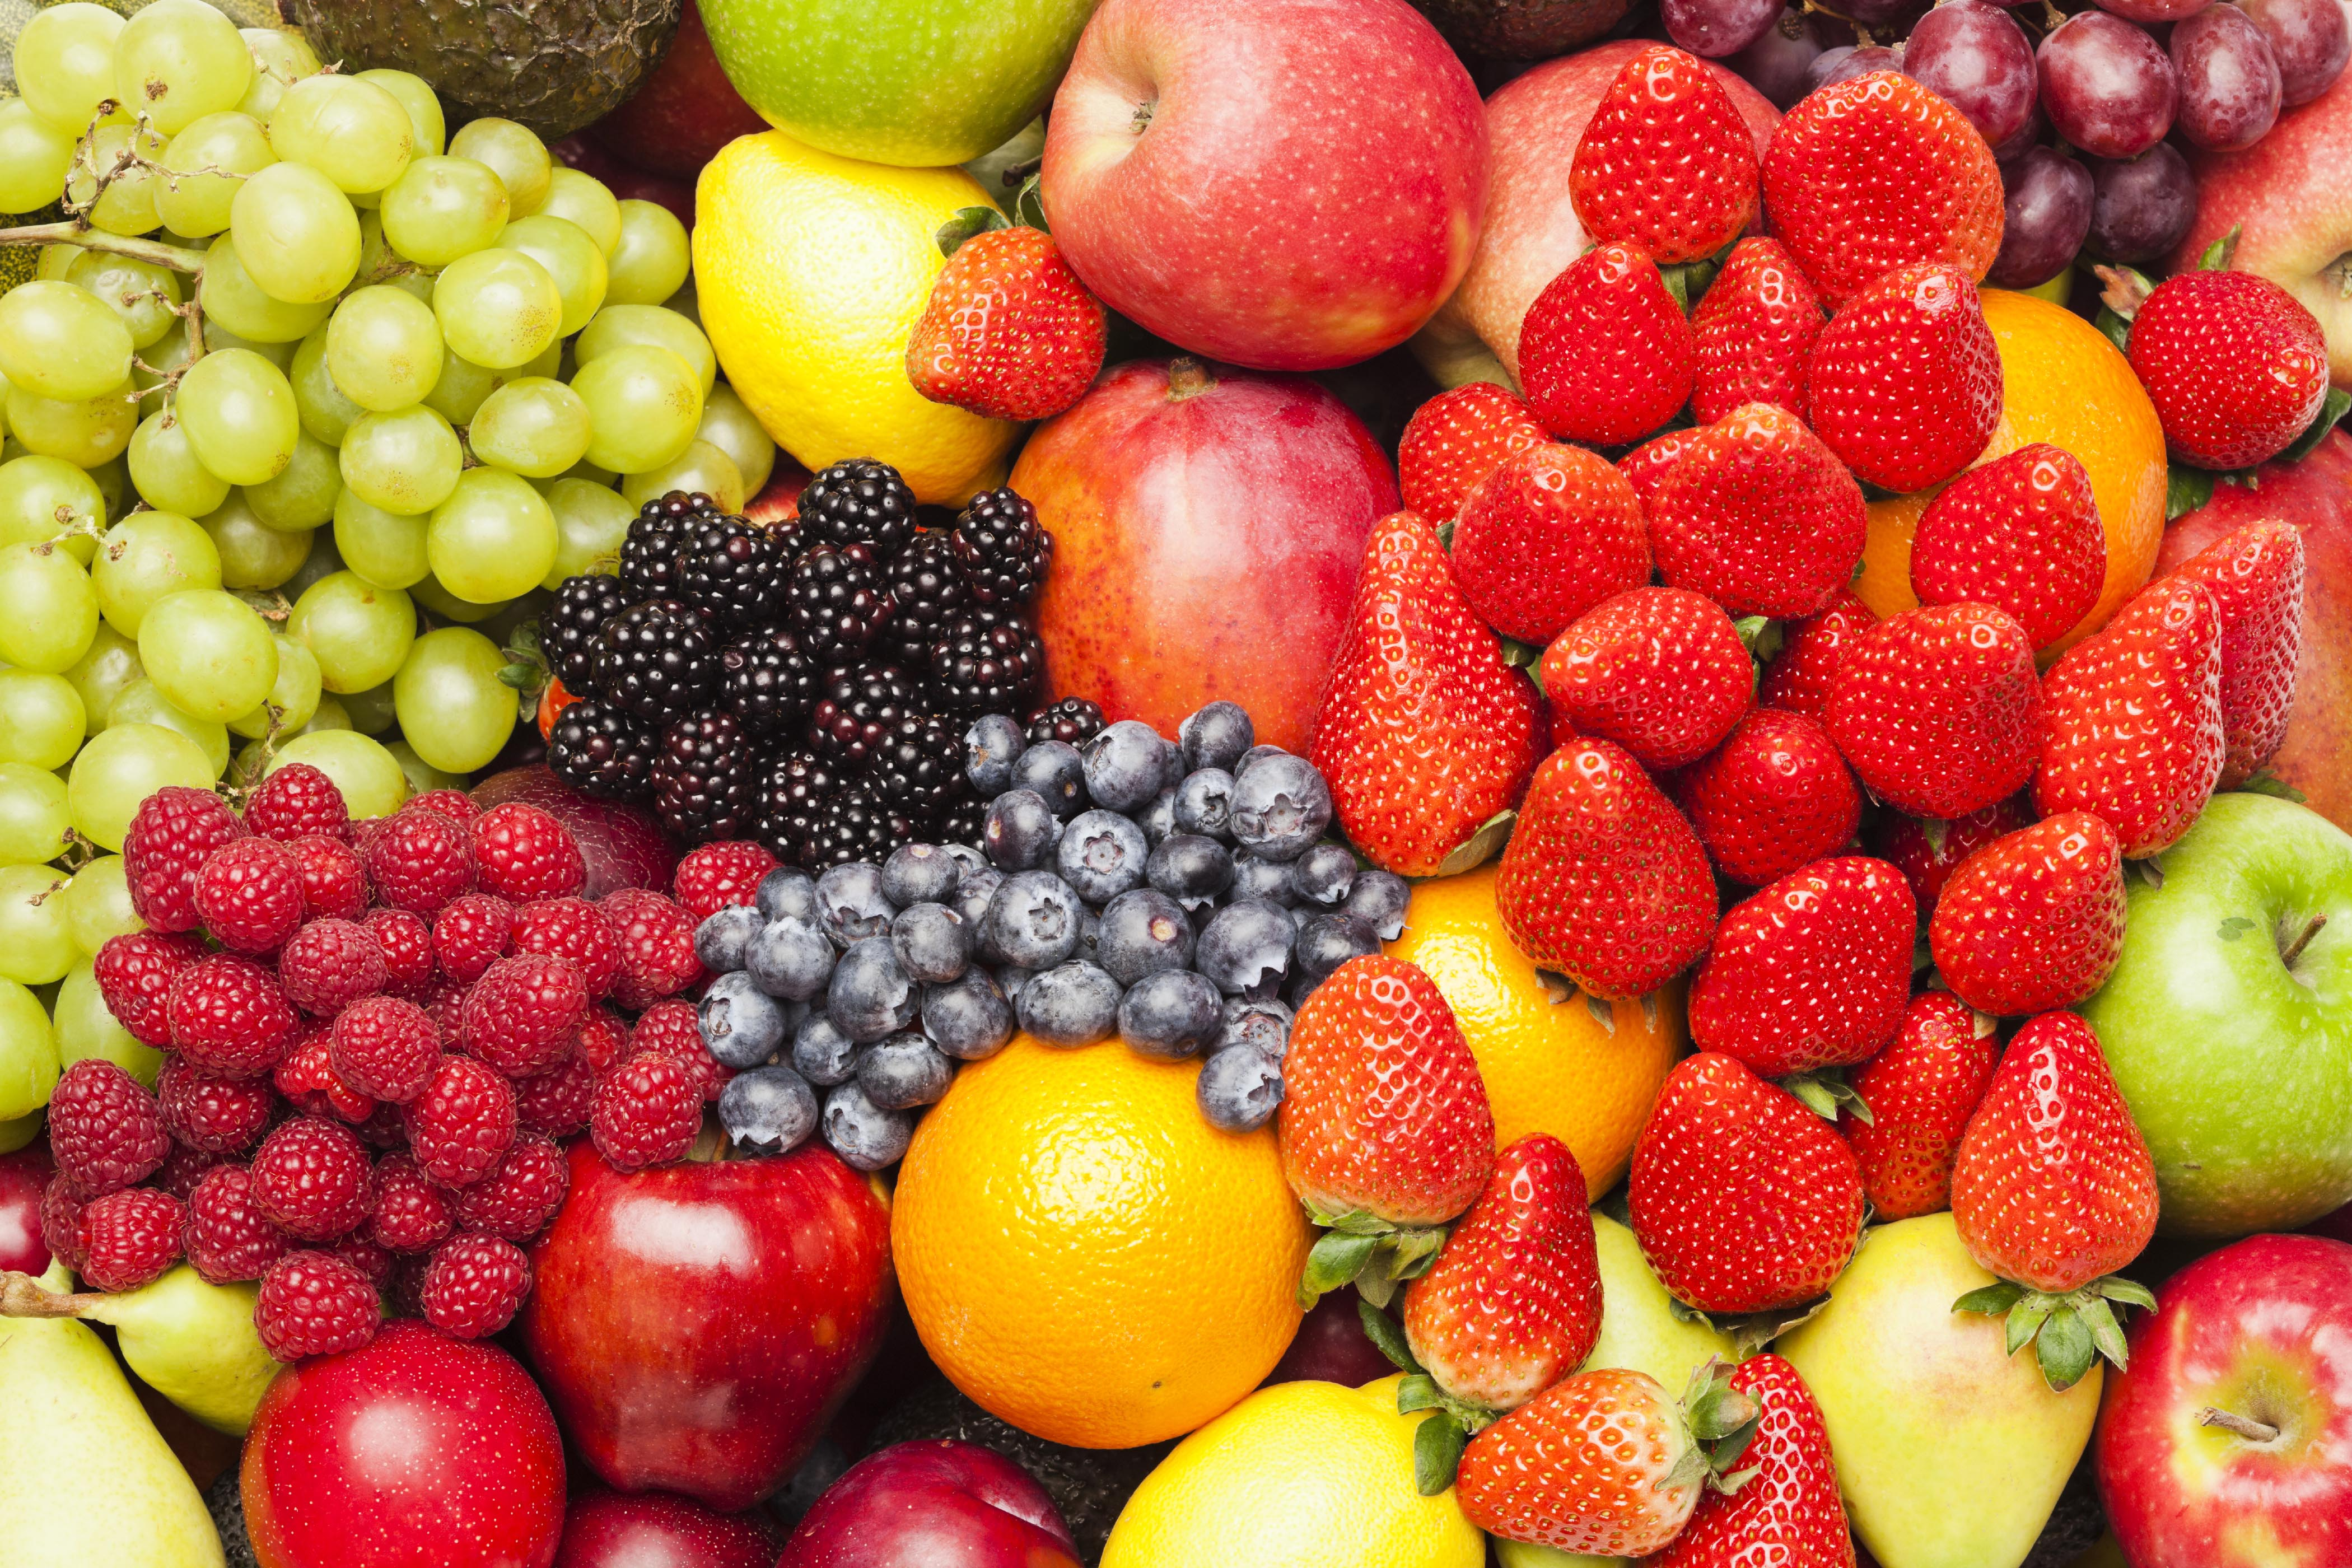 Author Post #2 – Focus on Fruits